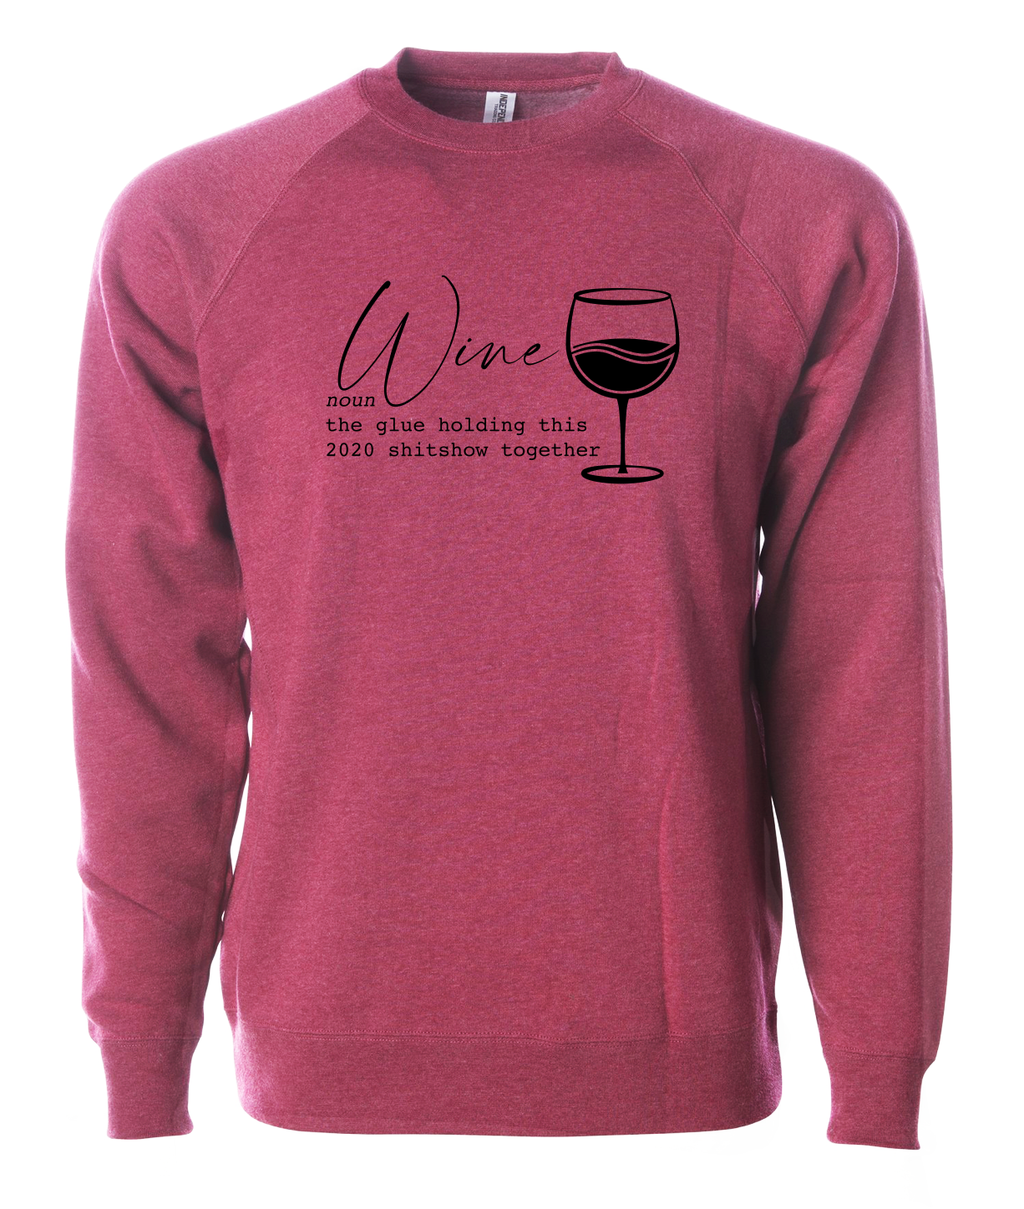 Definition of Wine in 2020 Sweatshirt